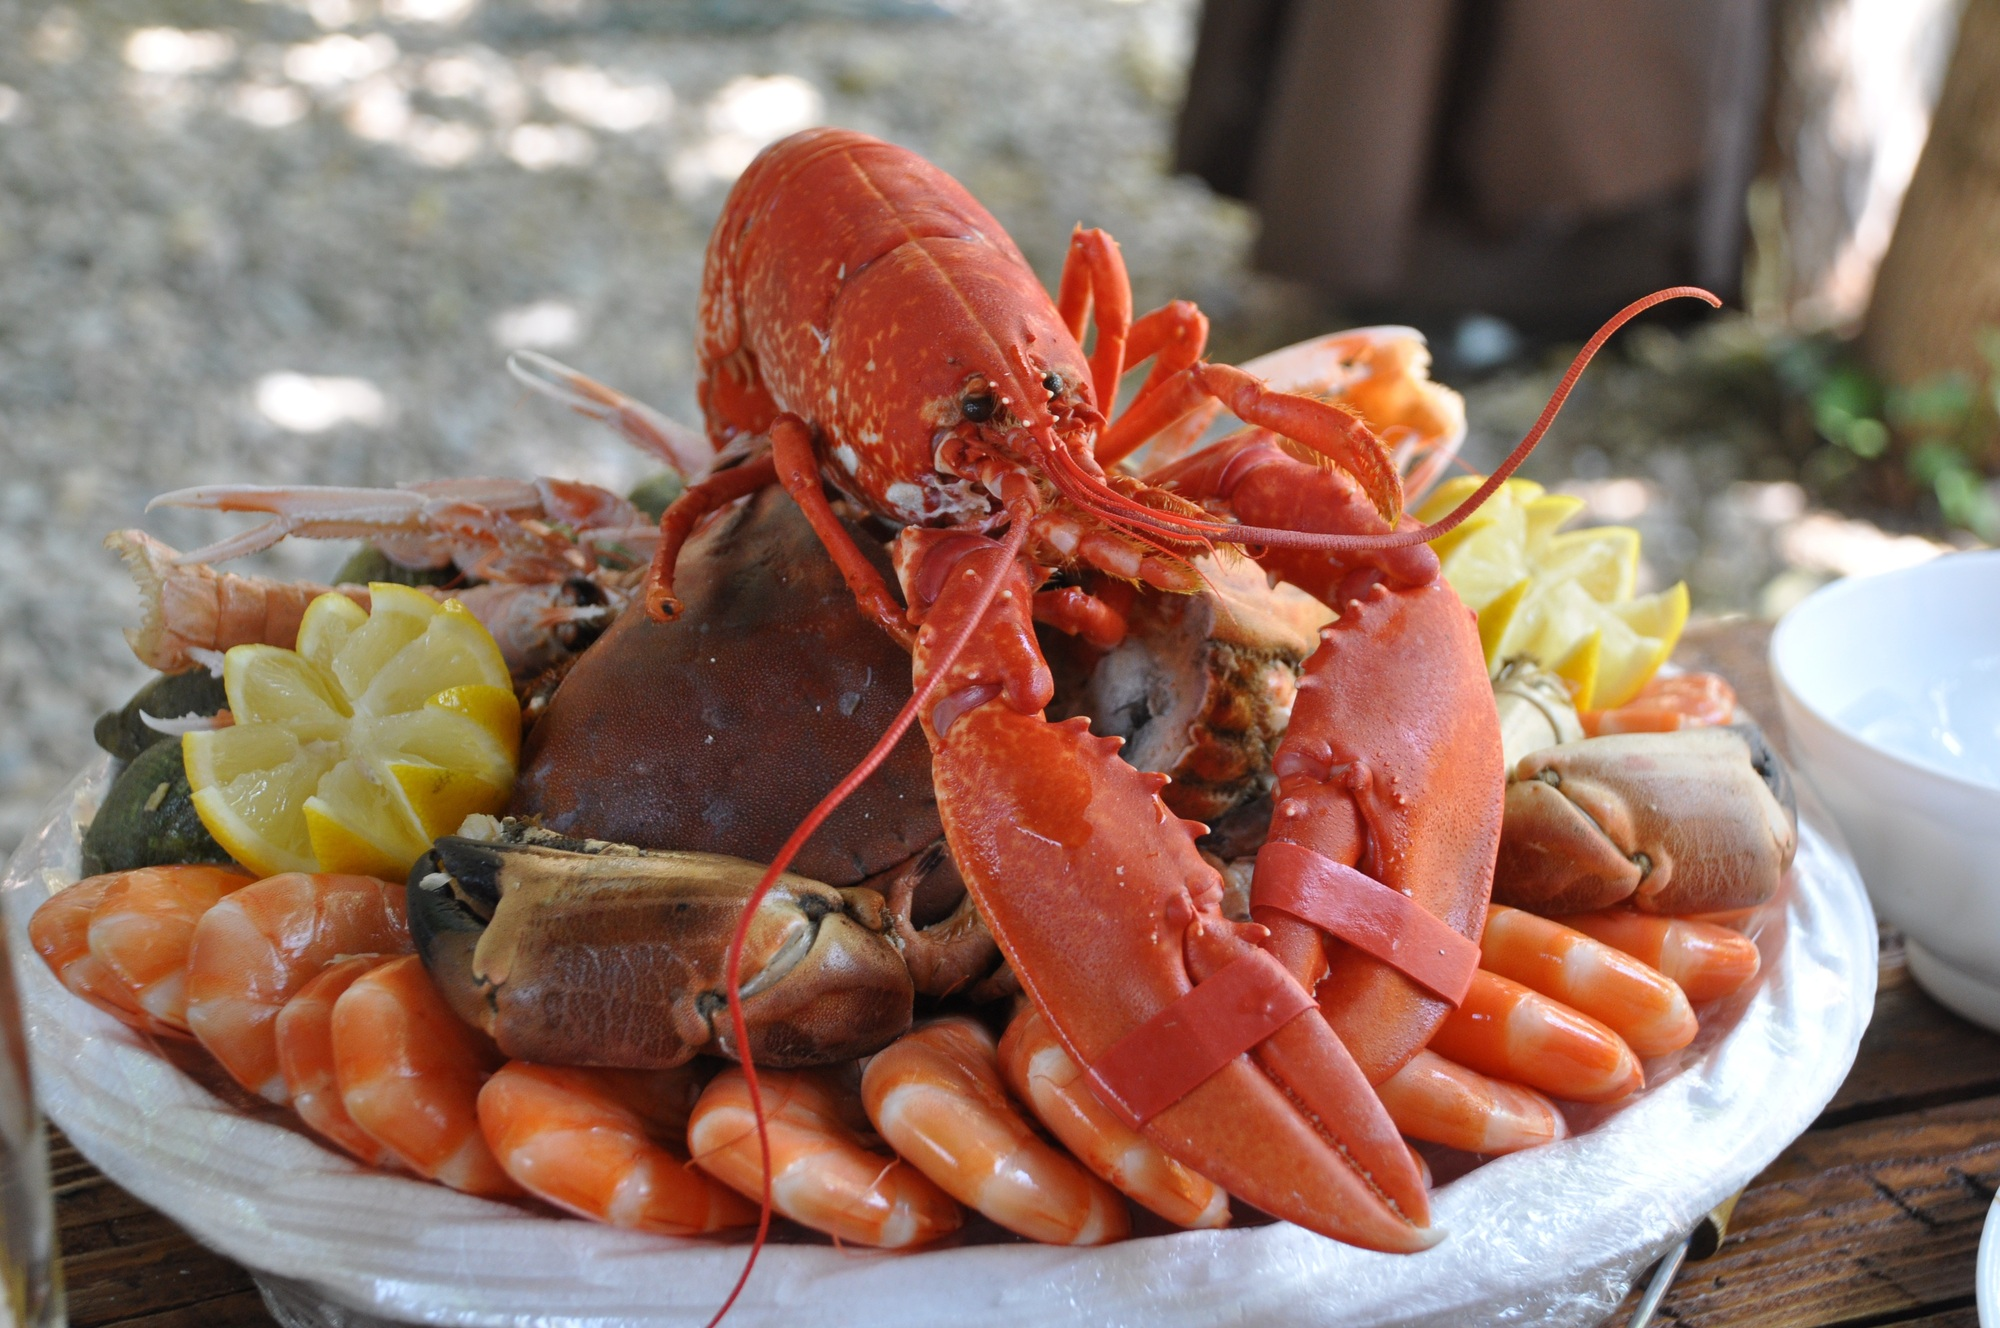 Top 3 Pro Tips for Steaming Lobster